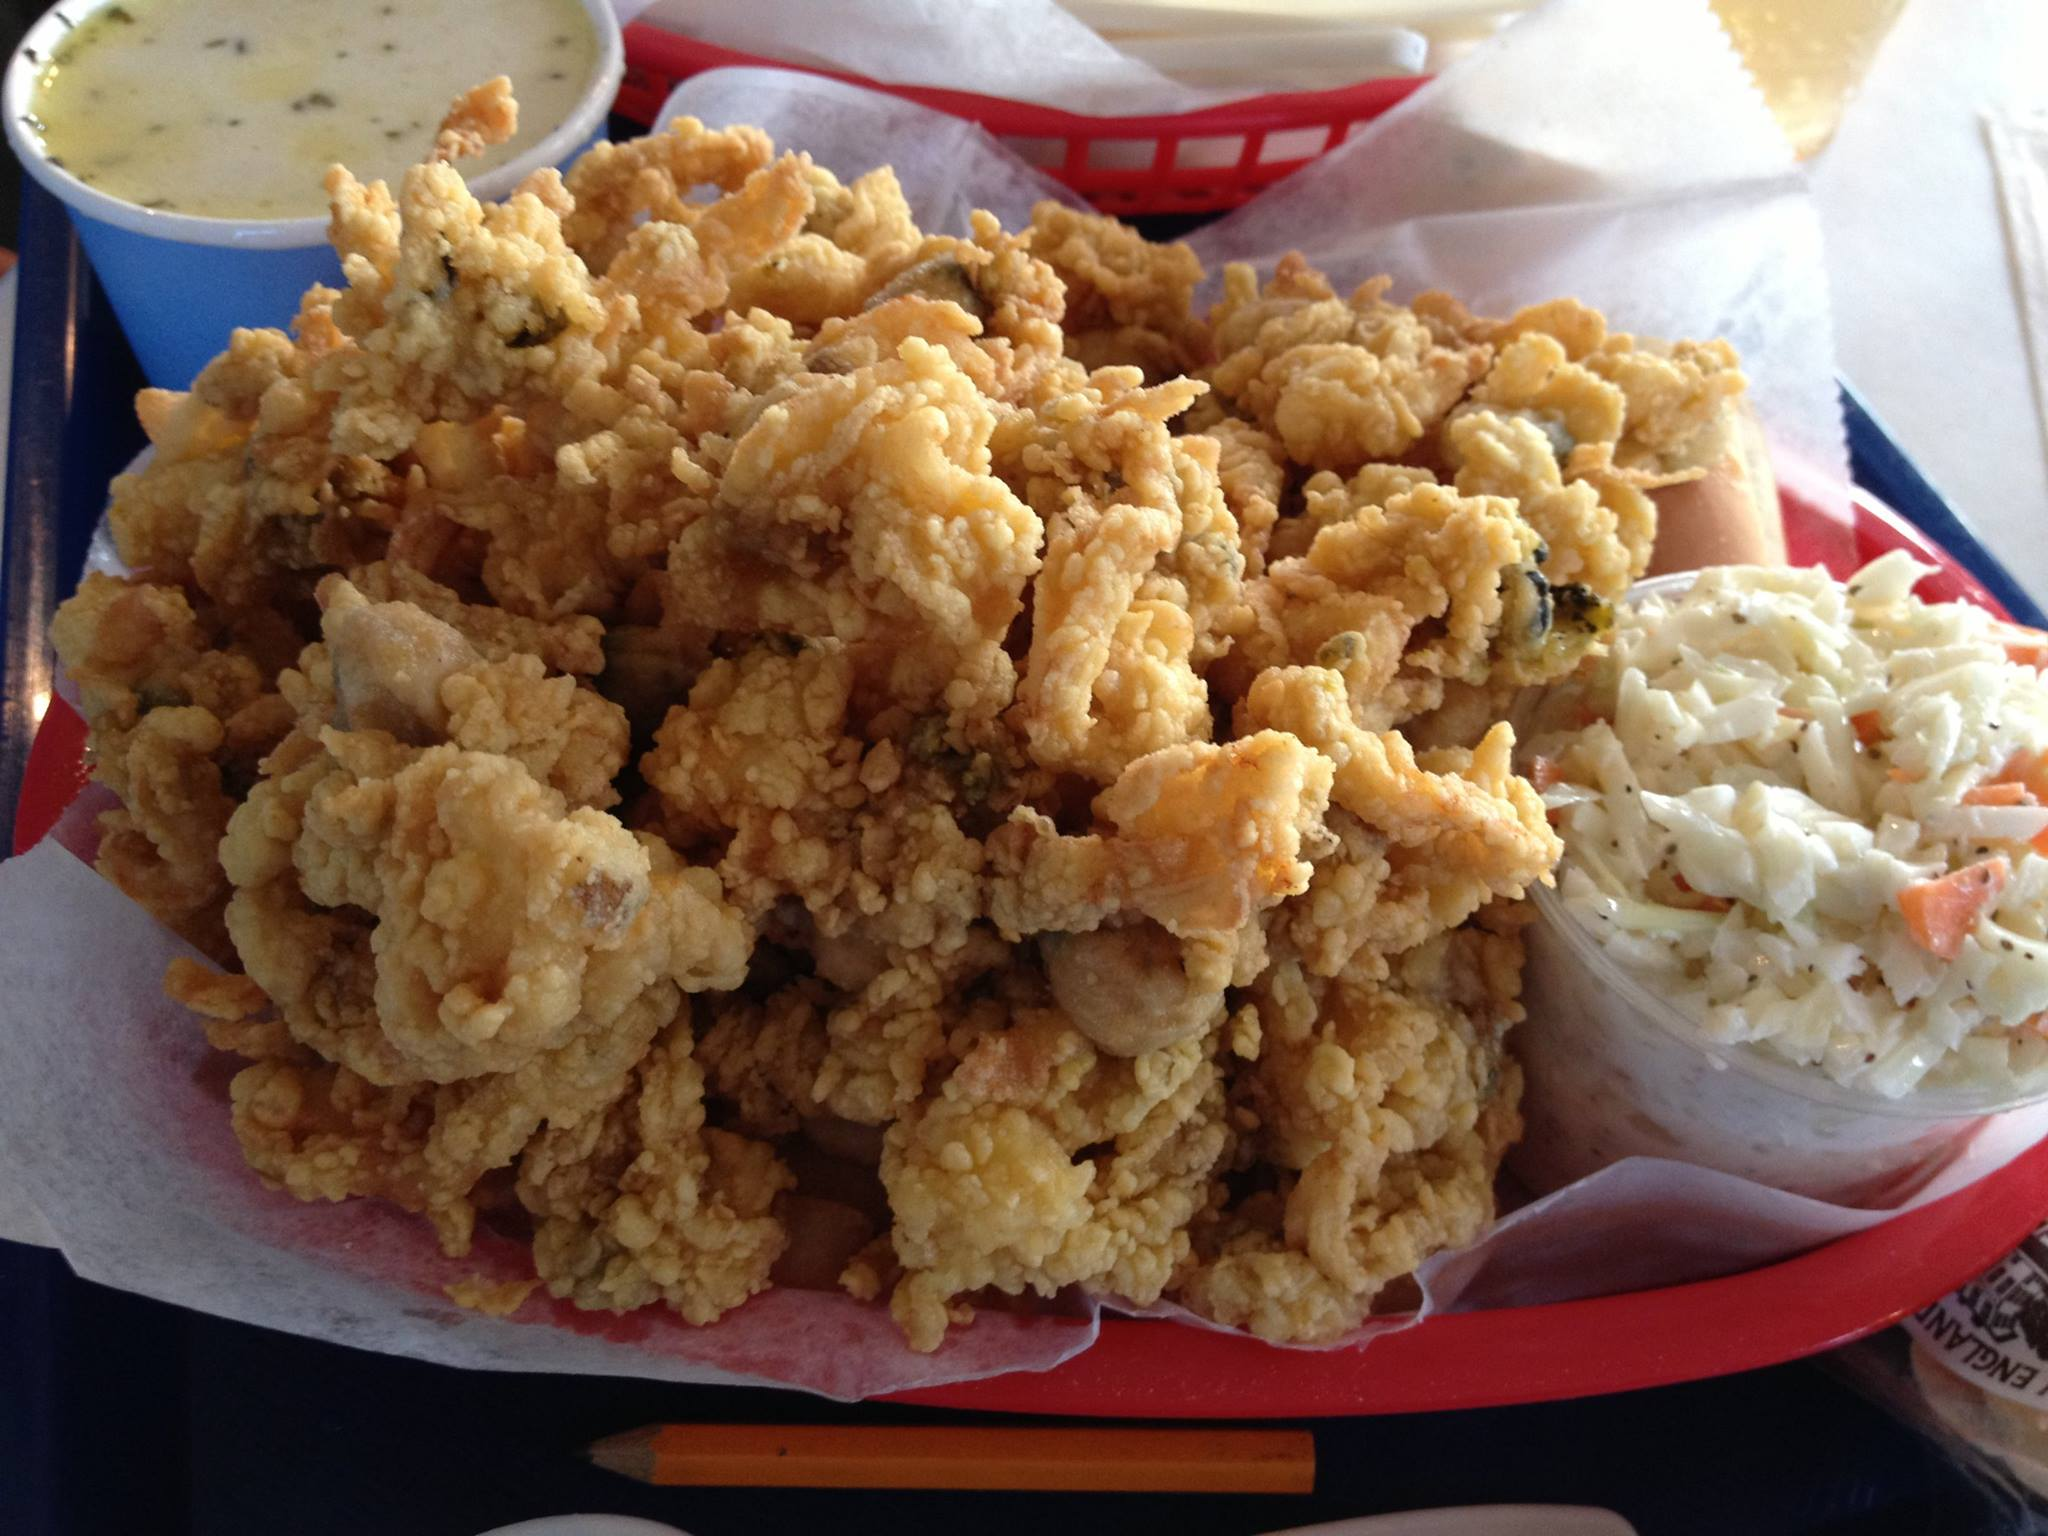 Fried clams at Bob's Clam hut - they come in your choice of Bob's recipe or Lillian's recipe.